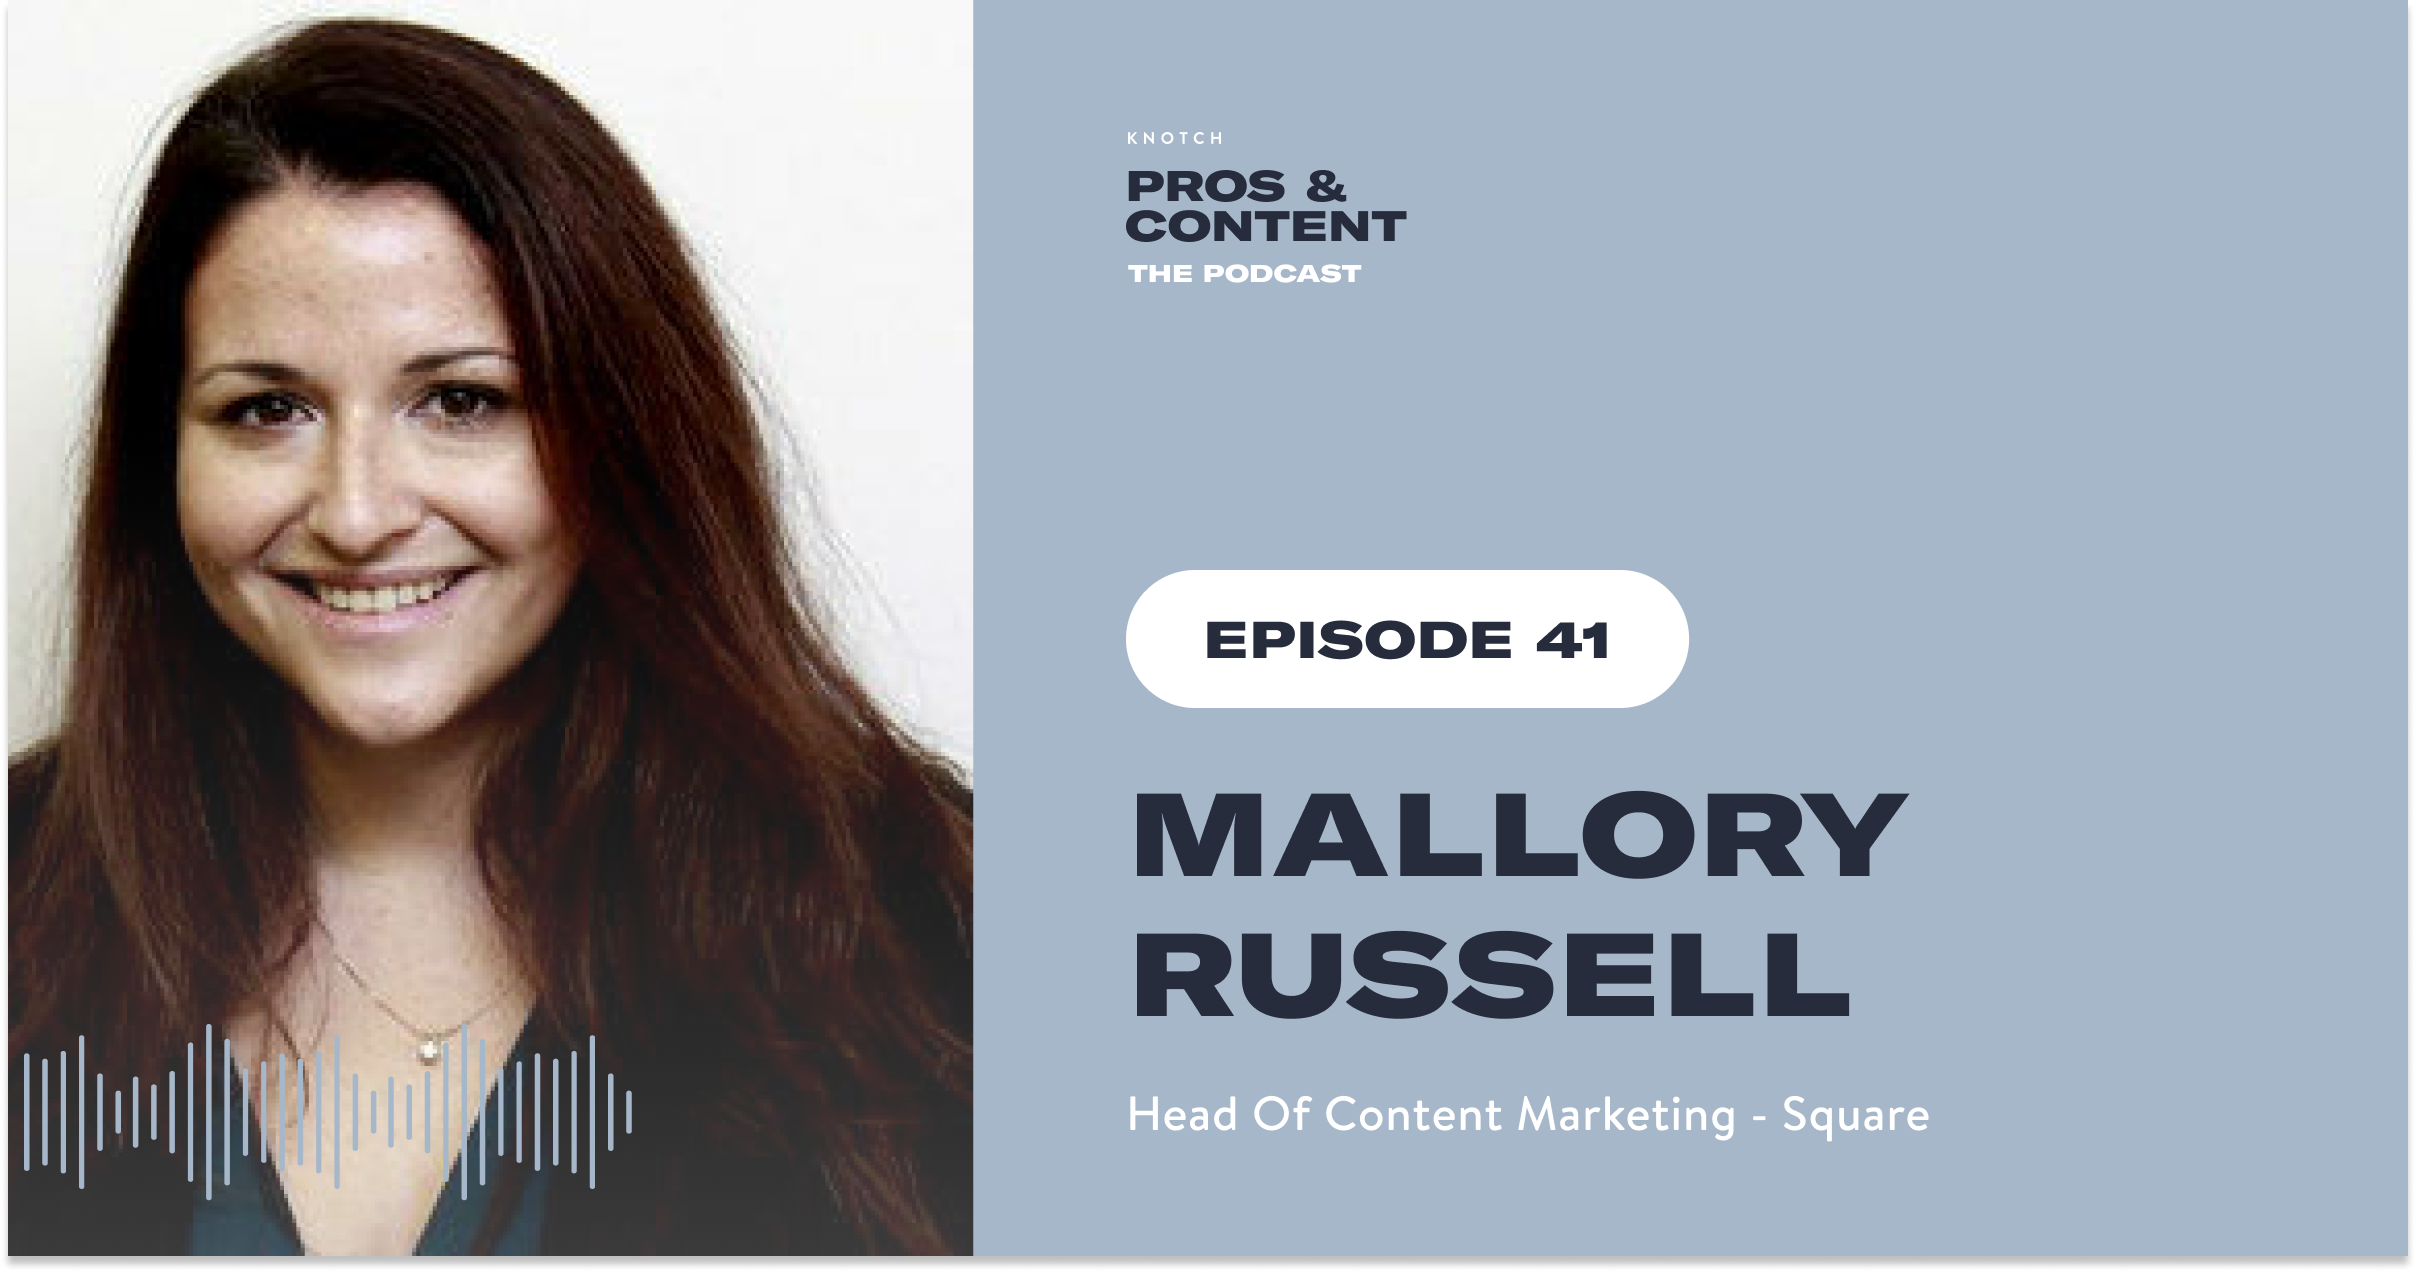 Pros & Content Podcast: Mallory Russell